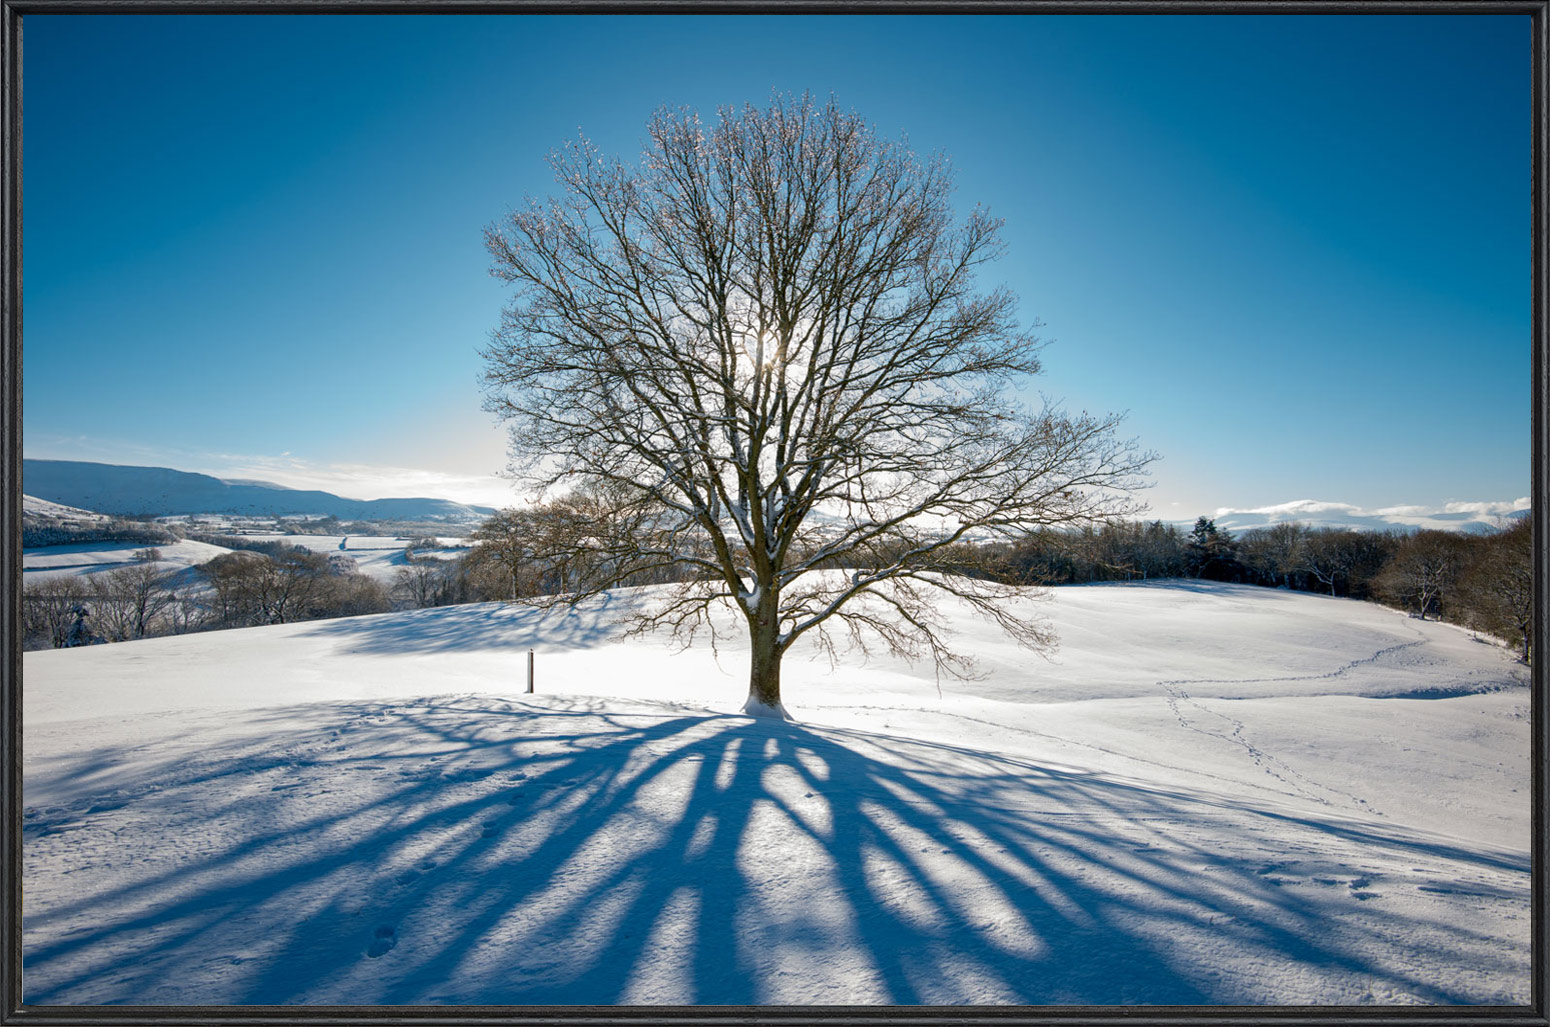 Tree in field snow sun shadow blue sky - Fine Art Print - Framed.jpg